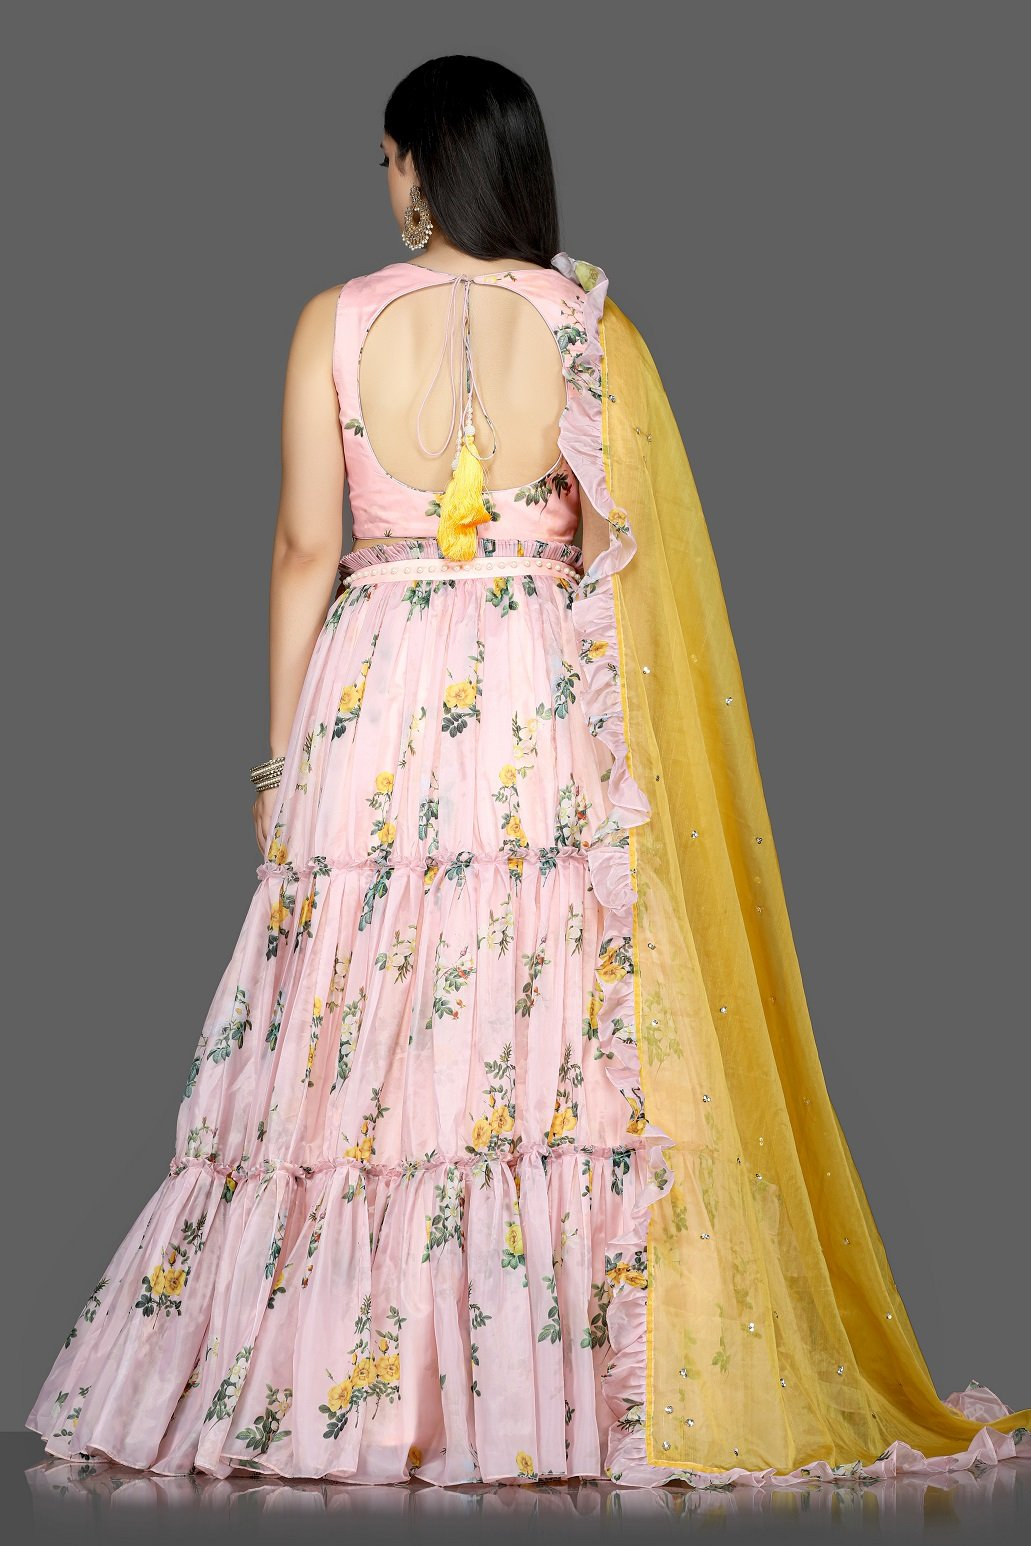 Buy stunning powder pink floral organza silk lehenga online in USA with yellow dupatta. Flaunt ethnic fashion with exquisite designer lehenga, Indian wedding dresses from Pure Elegance Indian fashion boutique in USA.-back